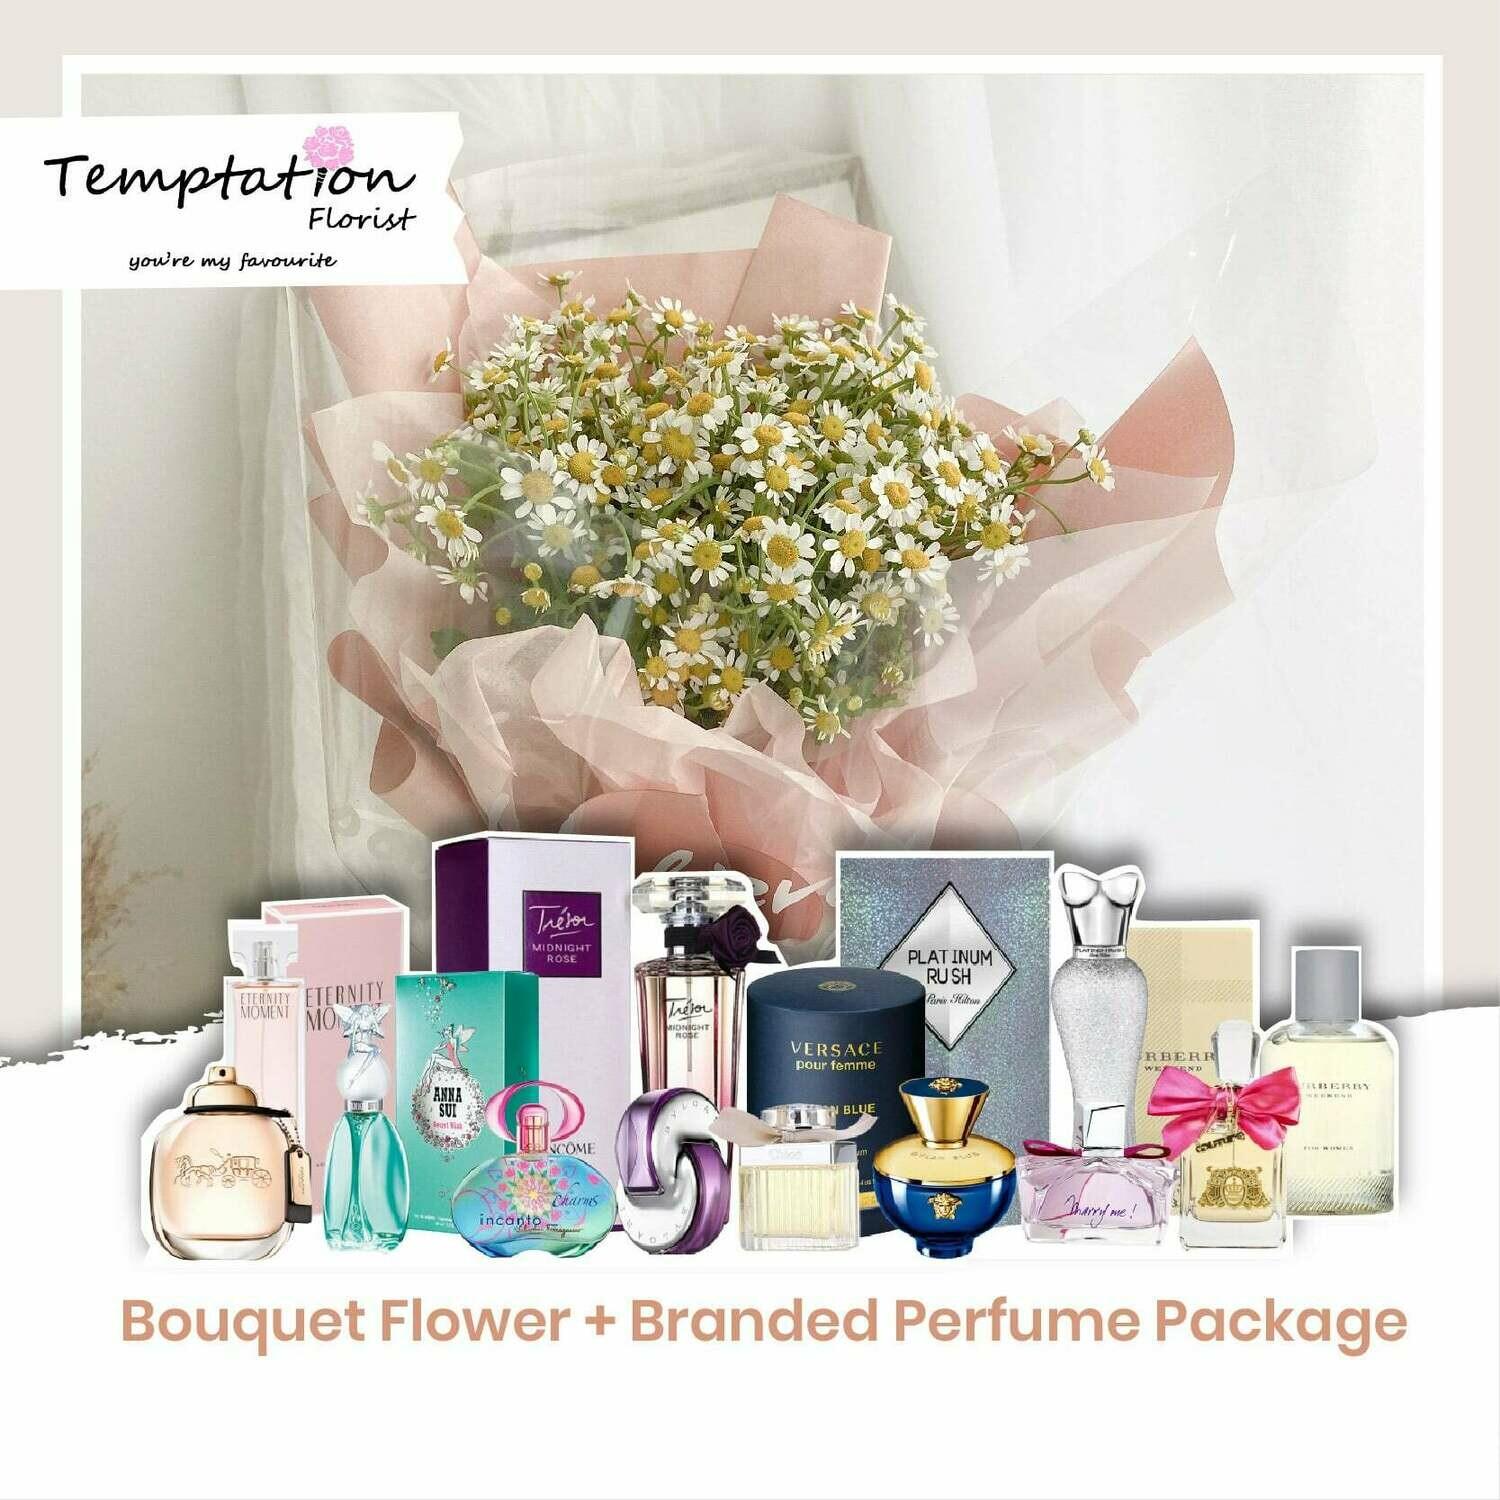 Temptation Florist Be Great Bouquet + Branded Perfume Package (Free Shipping! Only Deliver in Seremban)